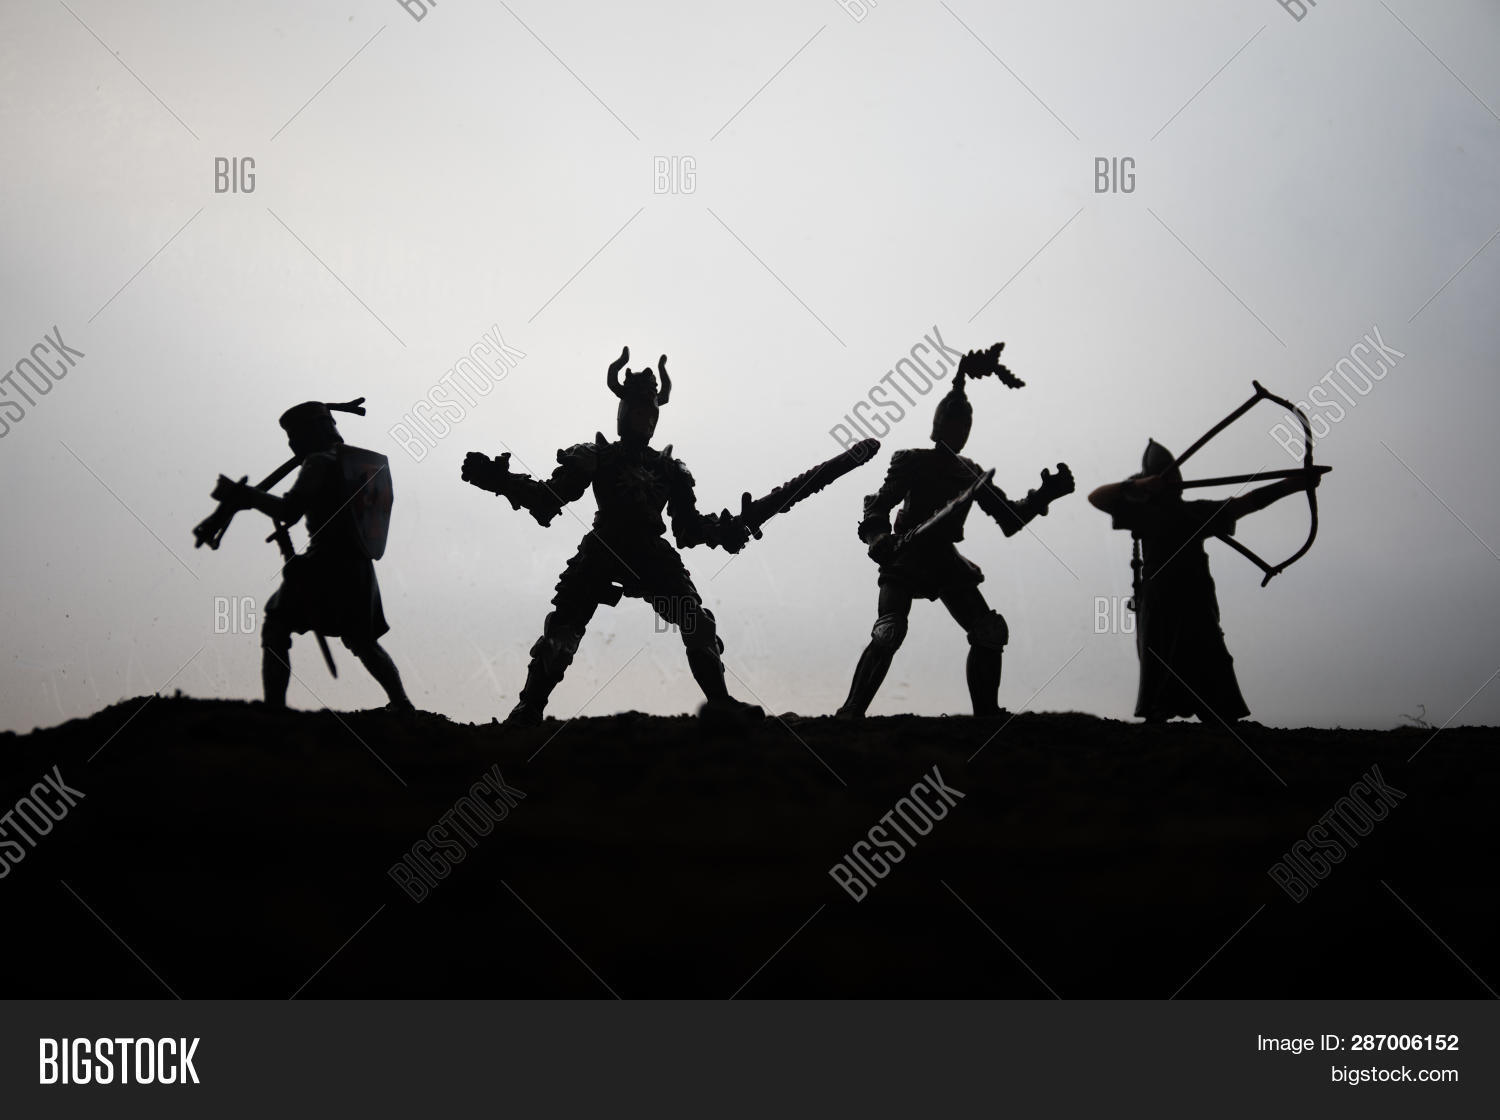 Medieval Battle Scene Image & Photo (Free Trial) | Bigstock